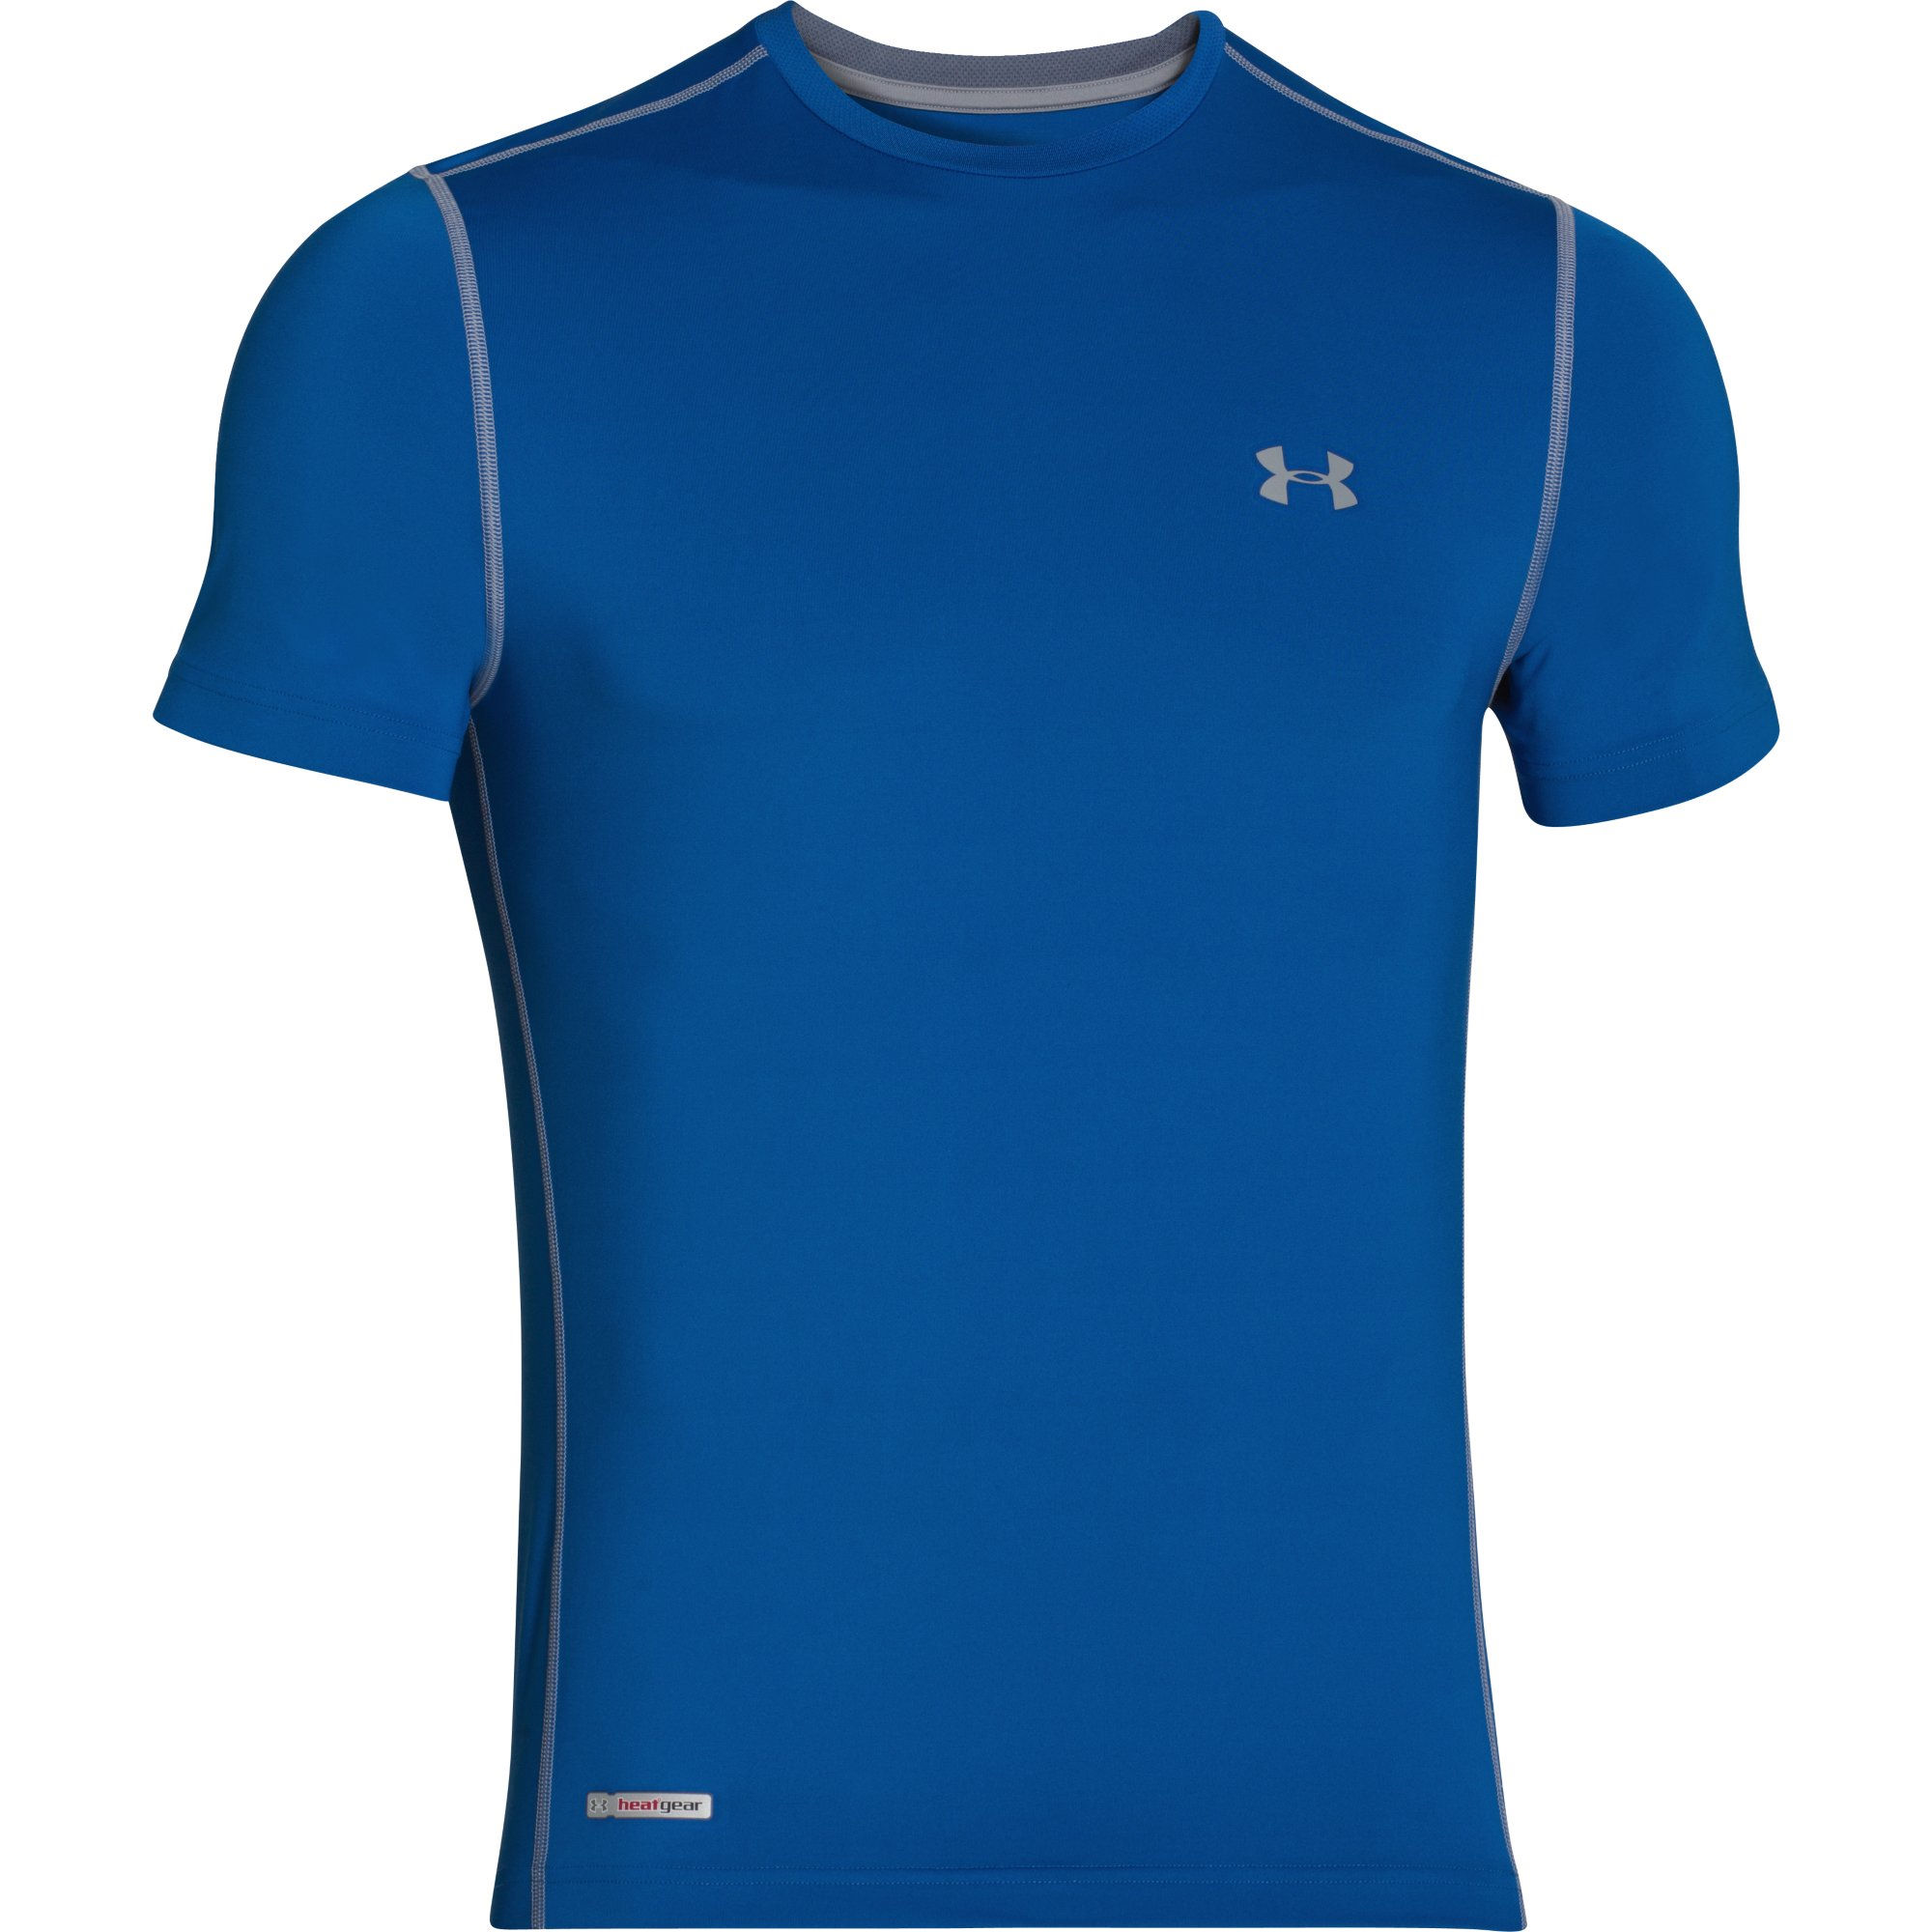 Maillots De Running Manches Courtes Under Armour